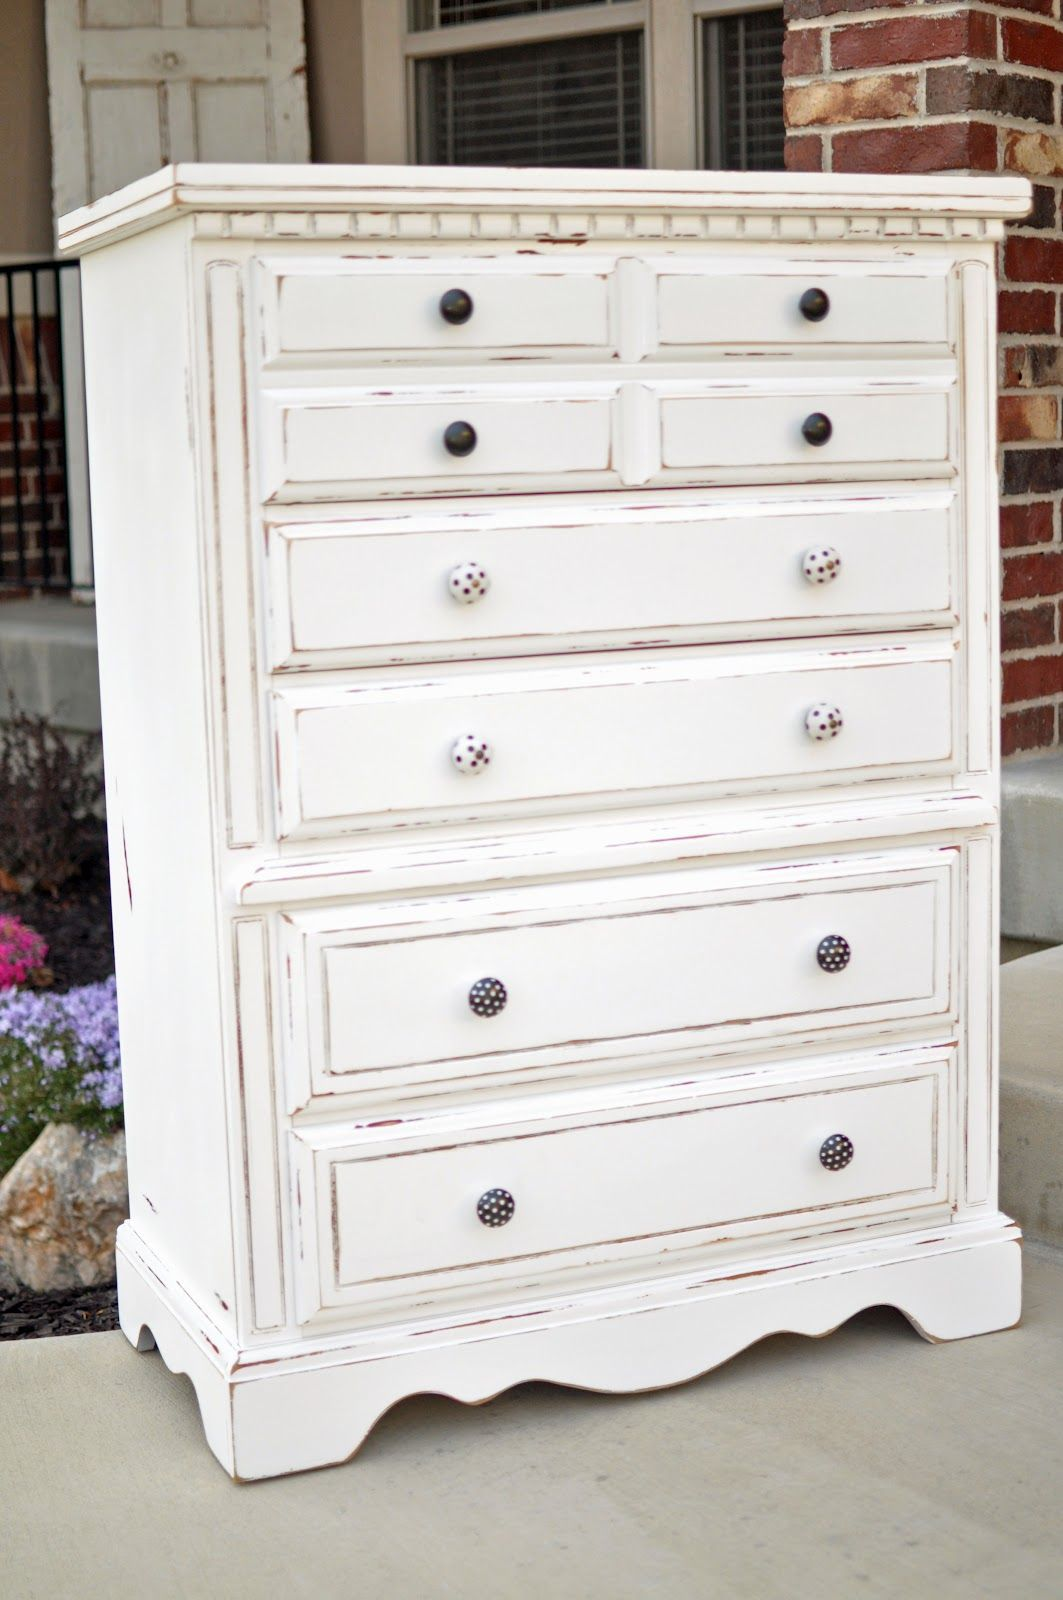 White refinished distressed dresser CleverlyCraftyblogspotcom  The Best of Cleverly Crafty